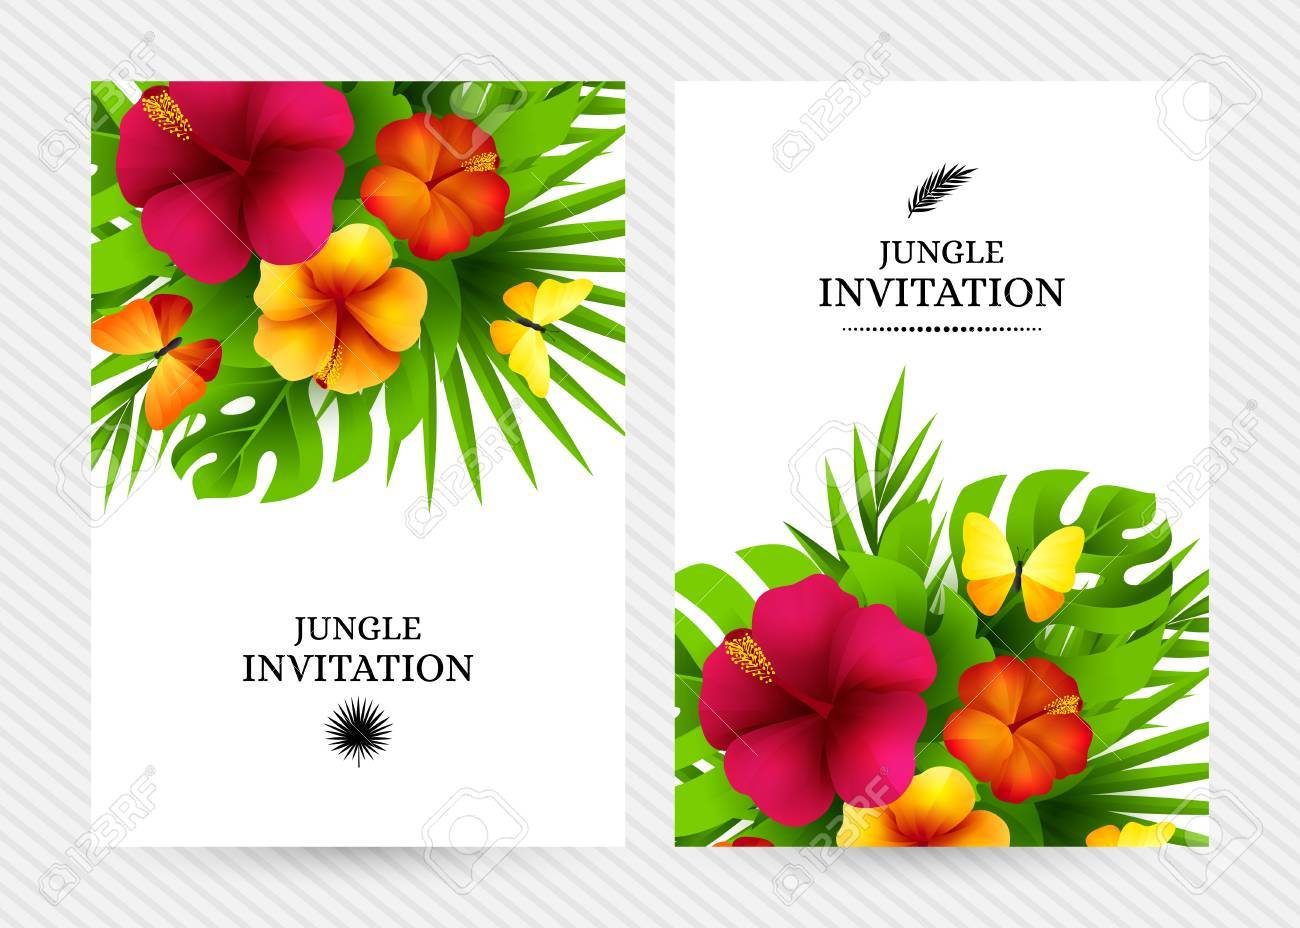 Tropical hawaiian background with jungle palm tree leaves, exotic flowers and butterflies. Vertical vector invitation banners with floral decorations and copy space - 62916070